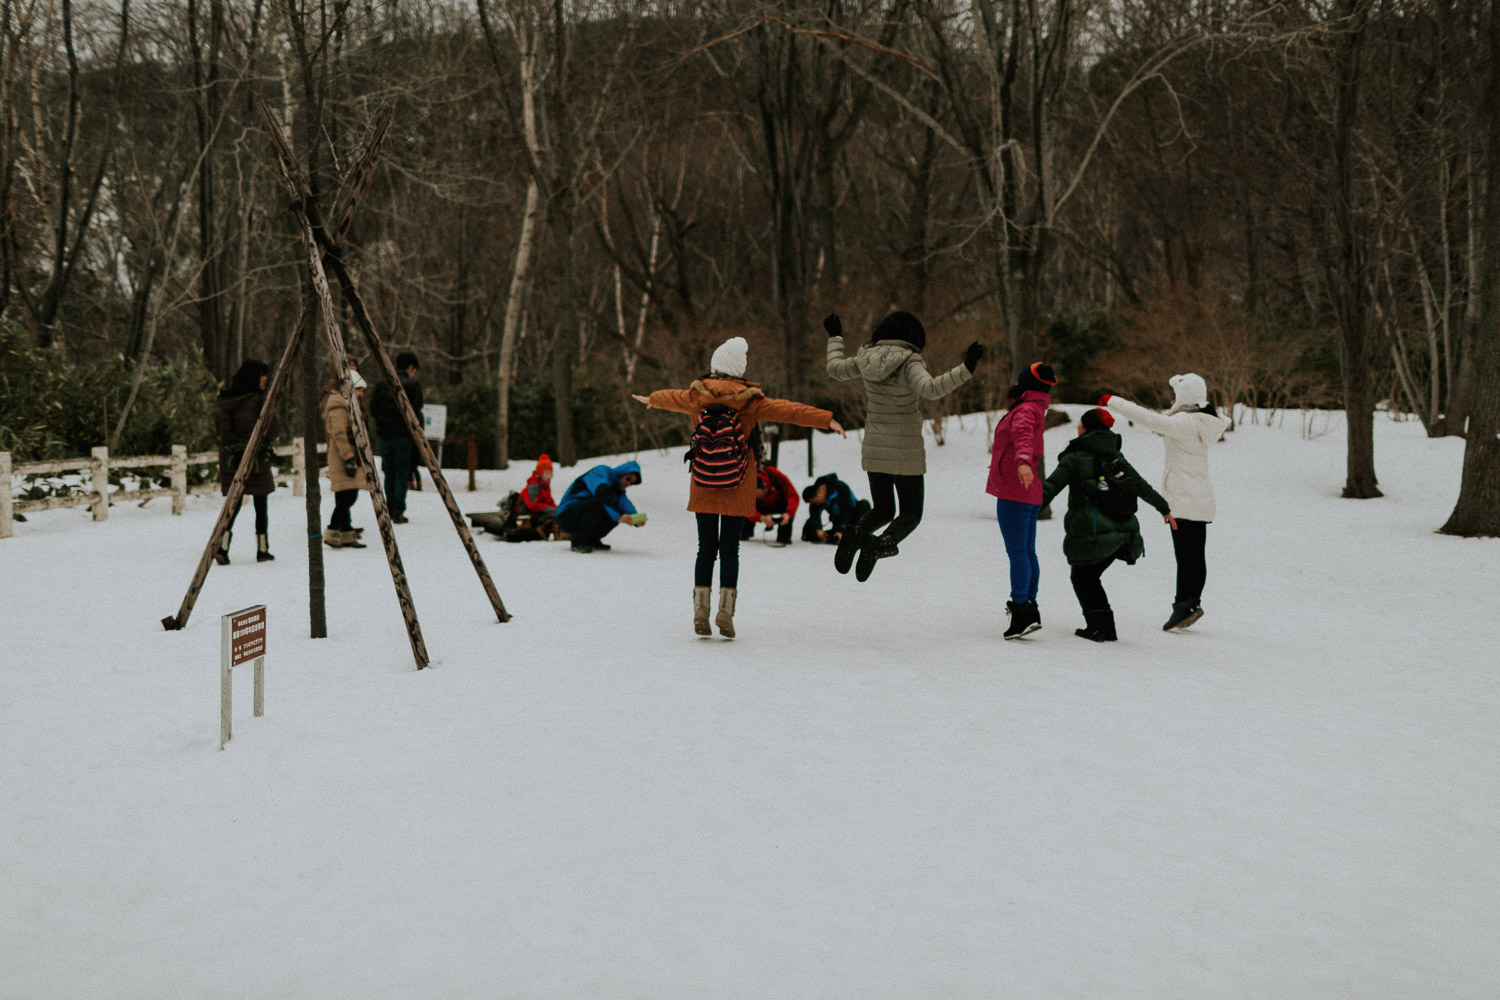 Image of group of people jumping on snow